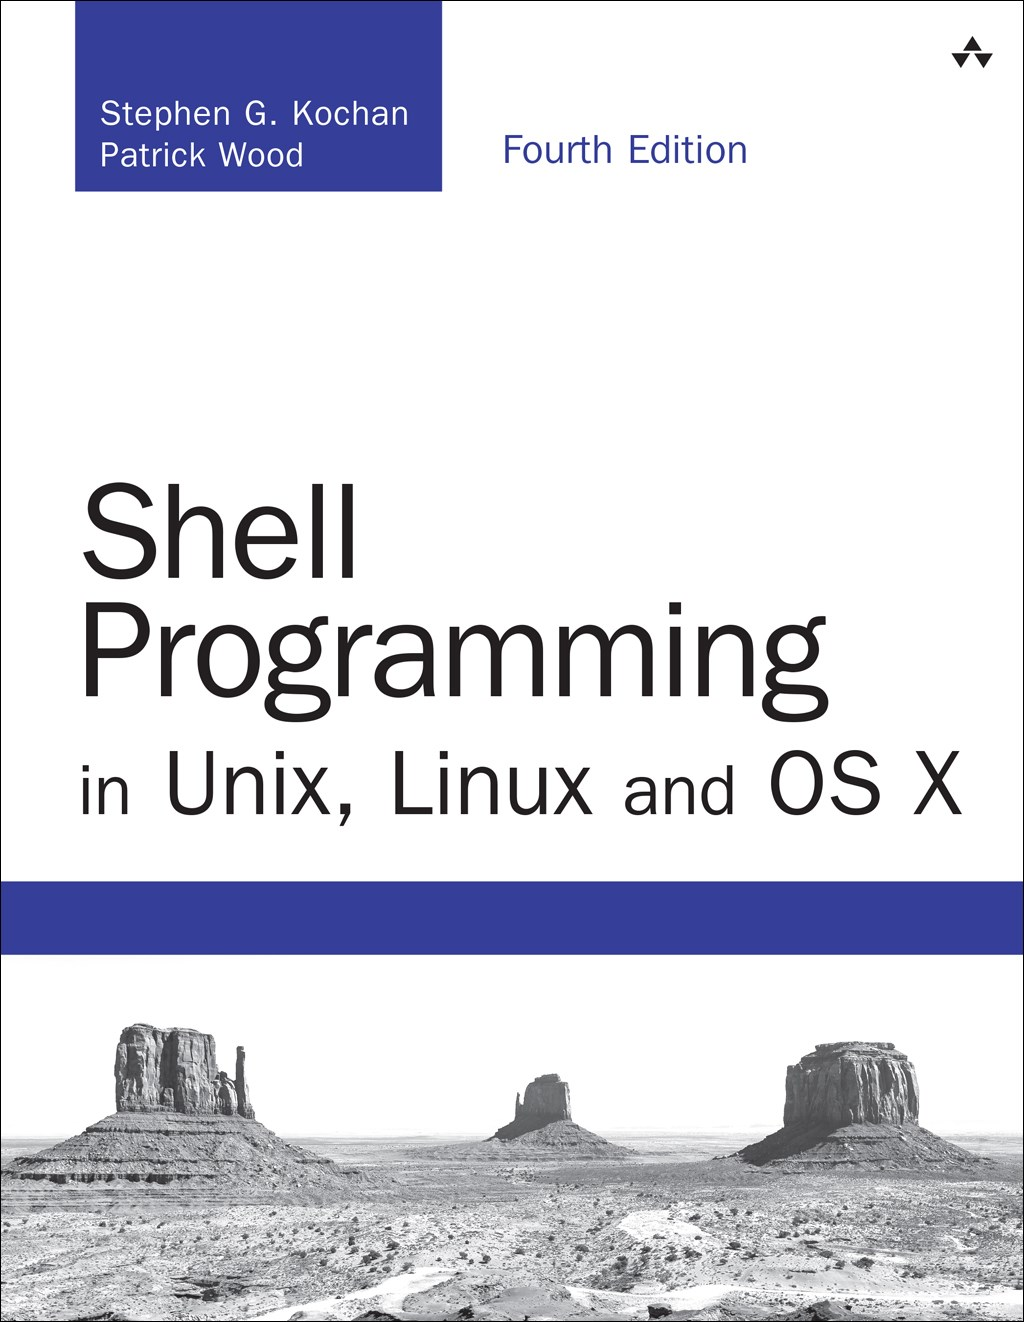 Shell Programming in Unix, Linux and OS X, 4th Edition